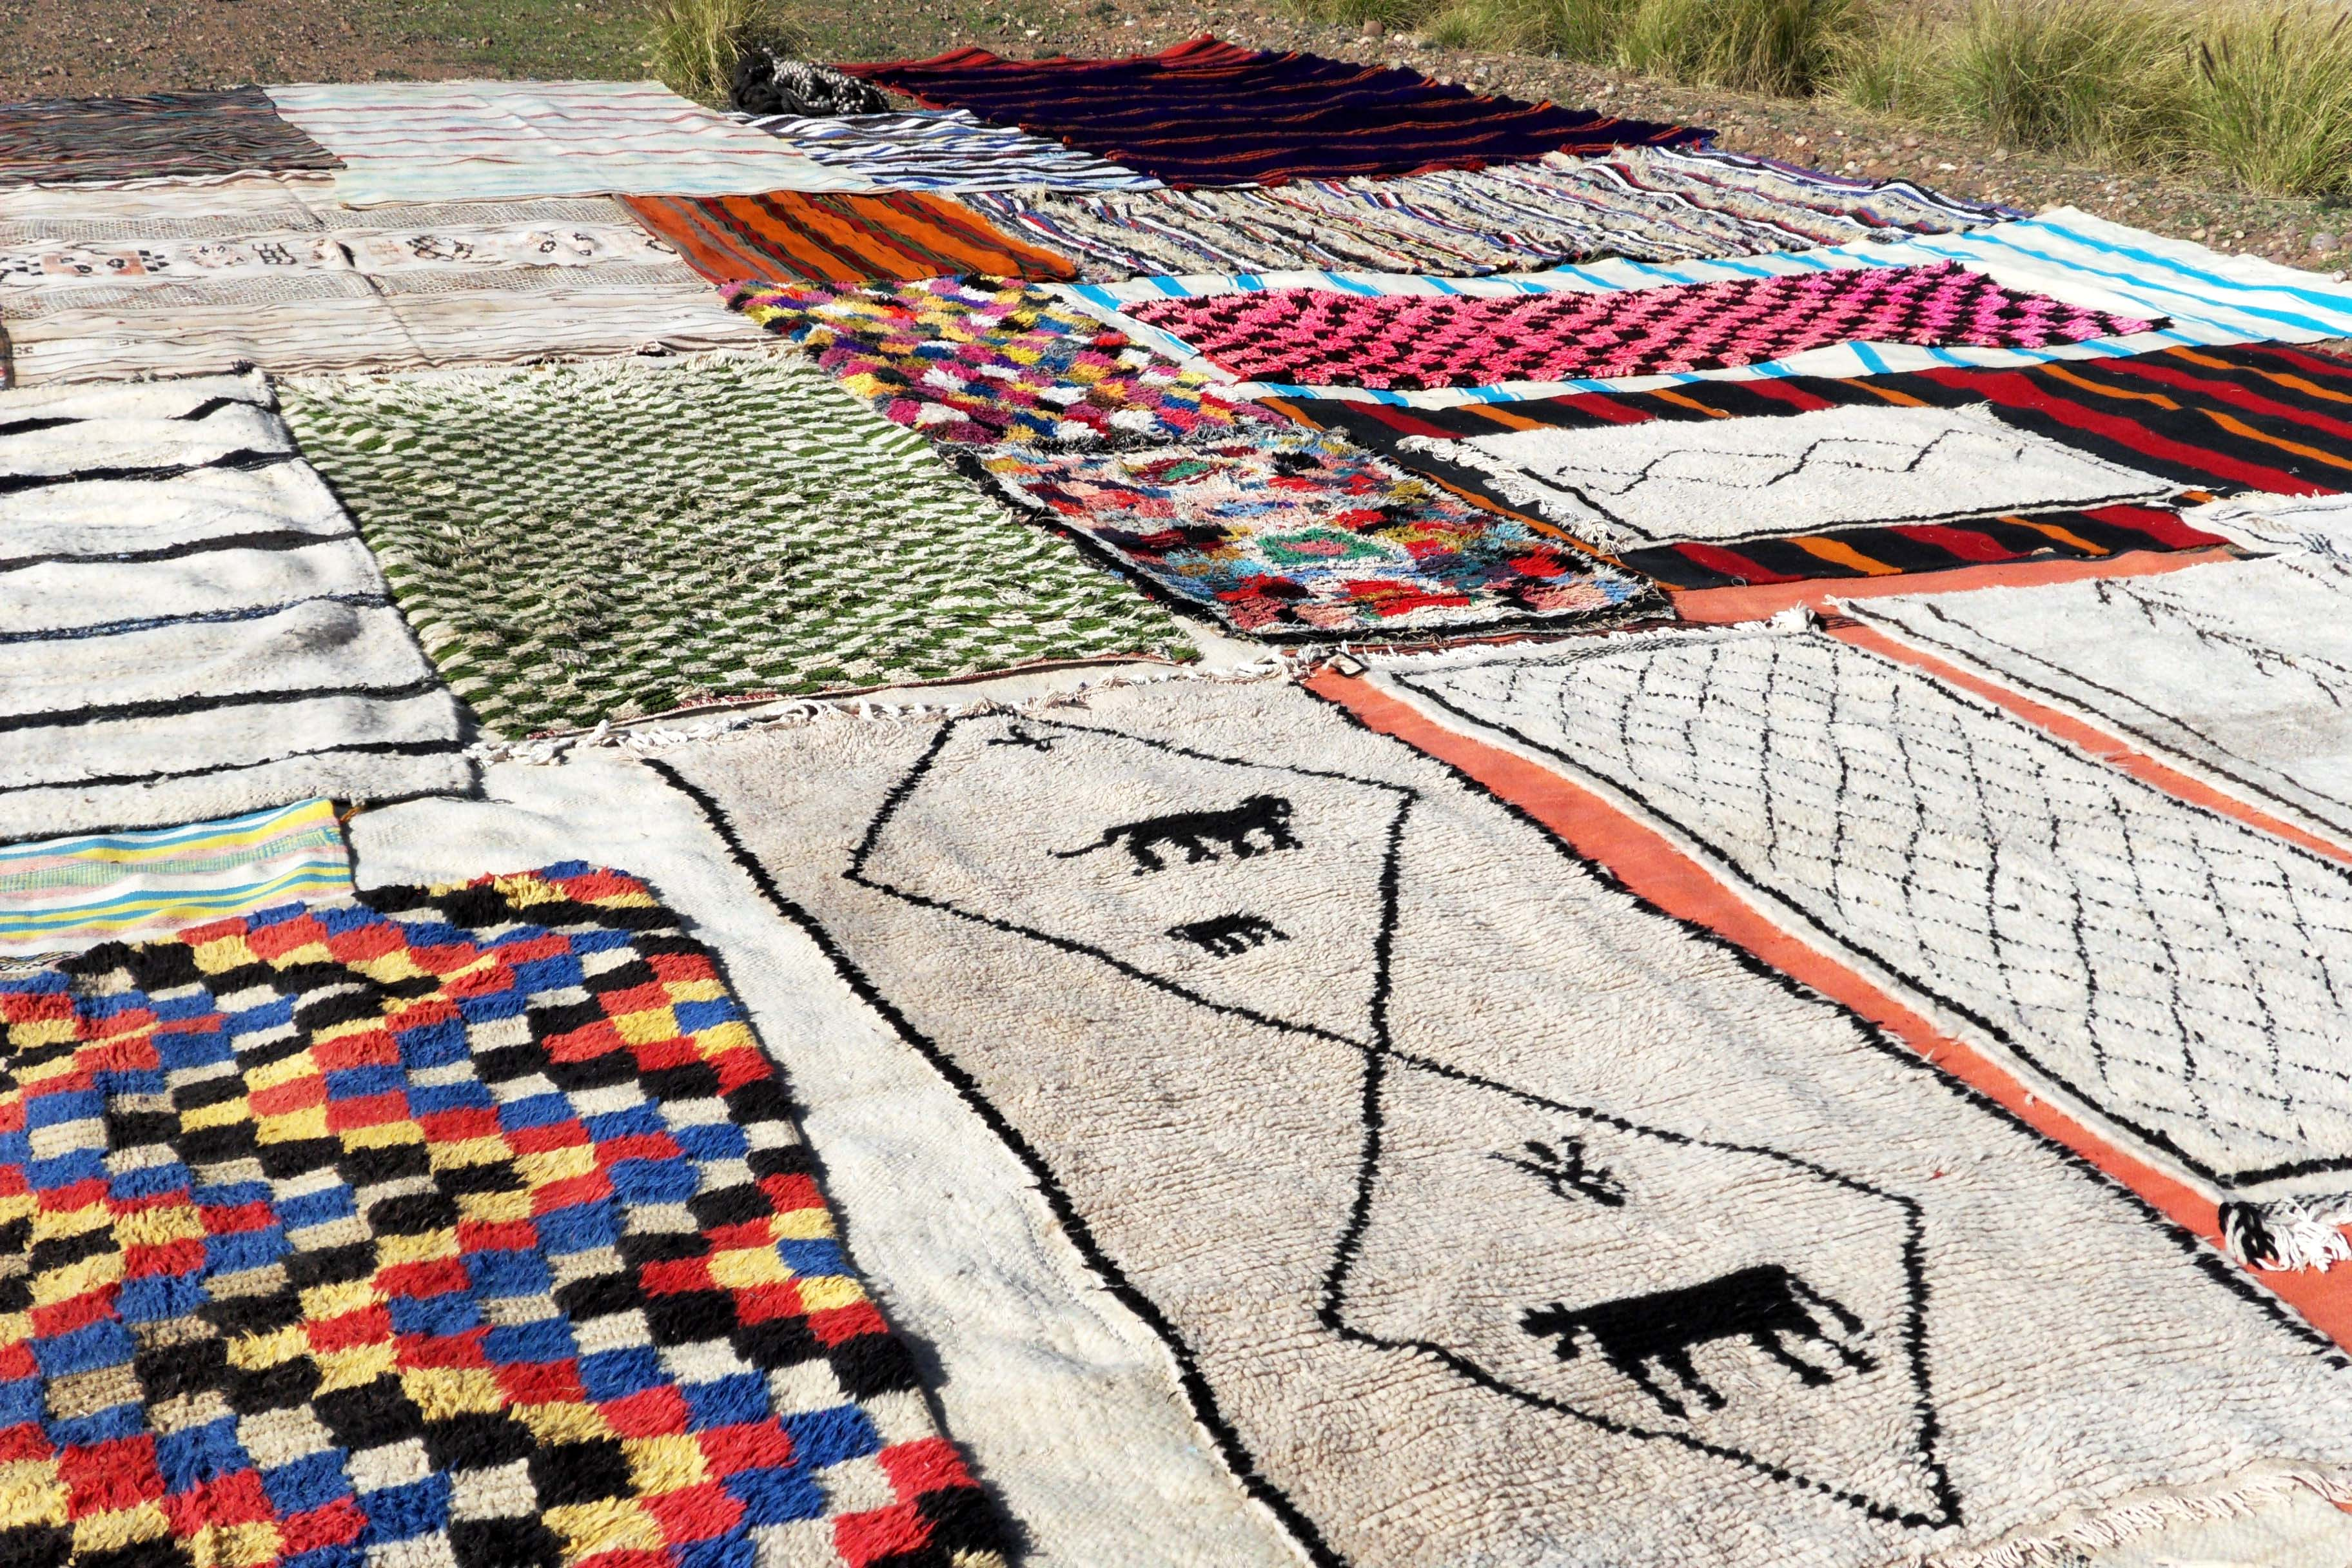 Berber Teppiche Marrakesch Rugs Of Morocco Colourful Berber Rugs Old Weaving From